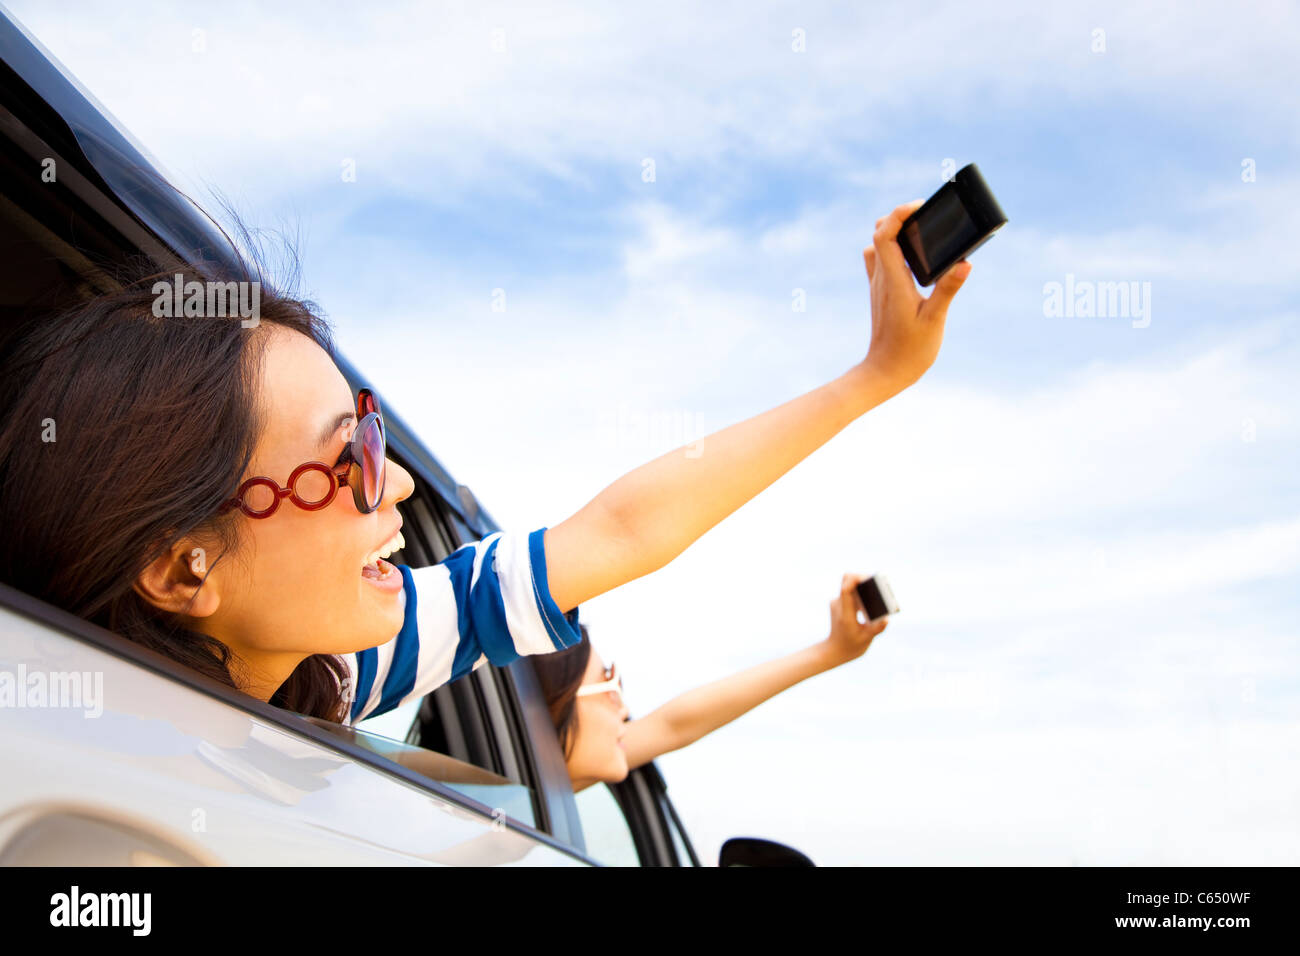 happy young woman holding camera and mobile phone taking photos in the car - Stock Image